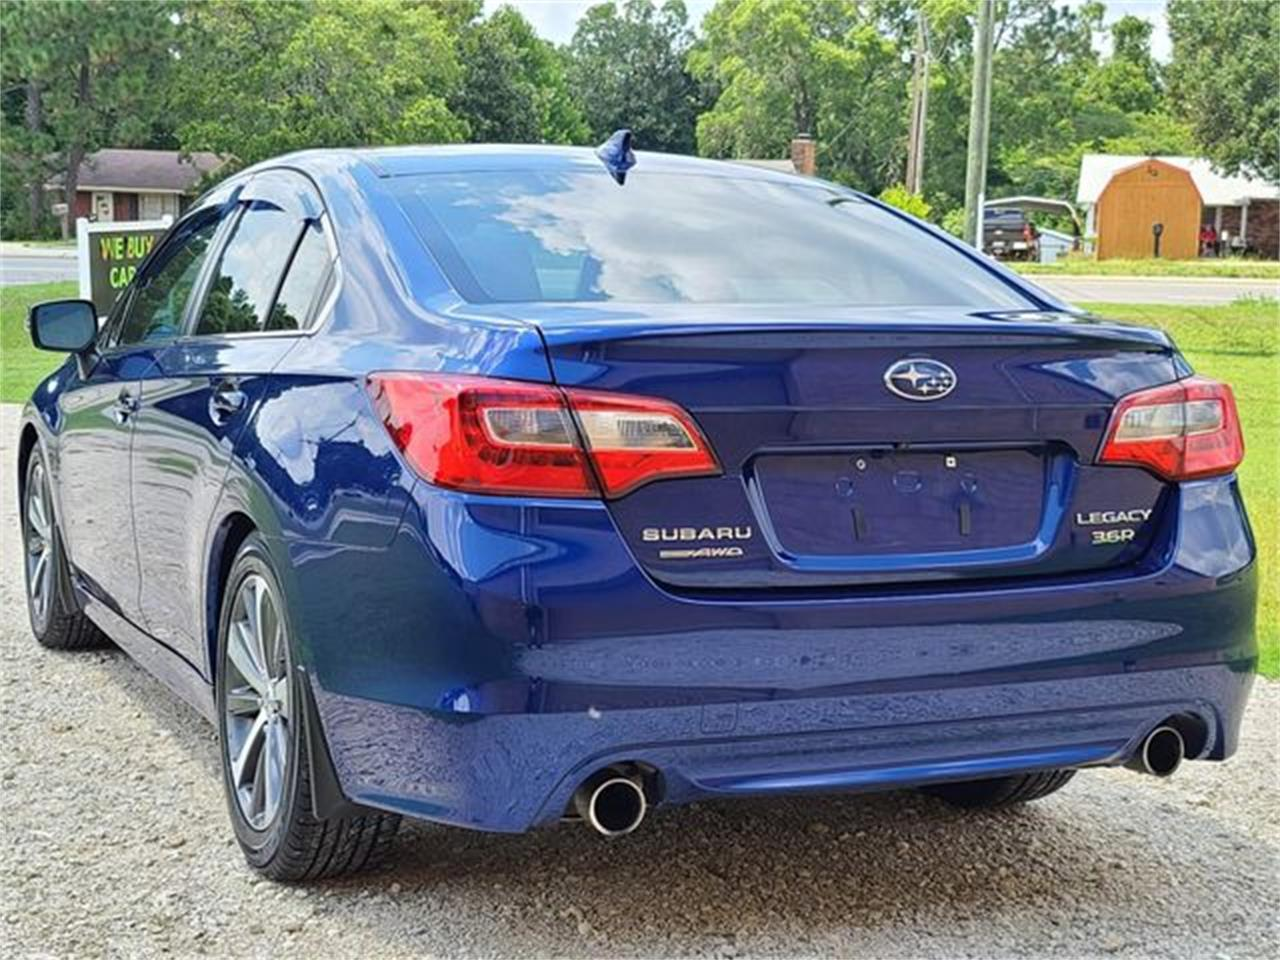 2016 Subaru Legacy (CC-1394167) for sale in Hope Mills, North Carolina